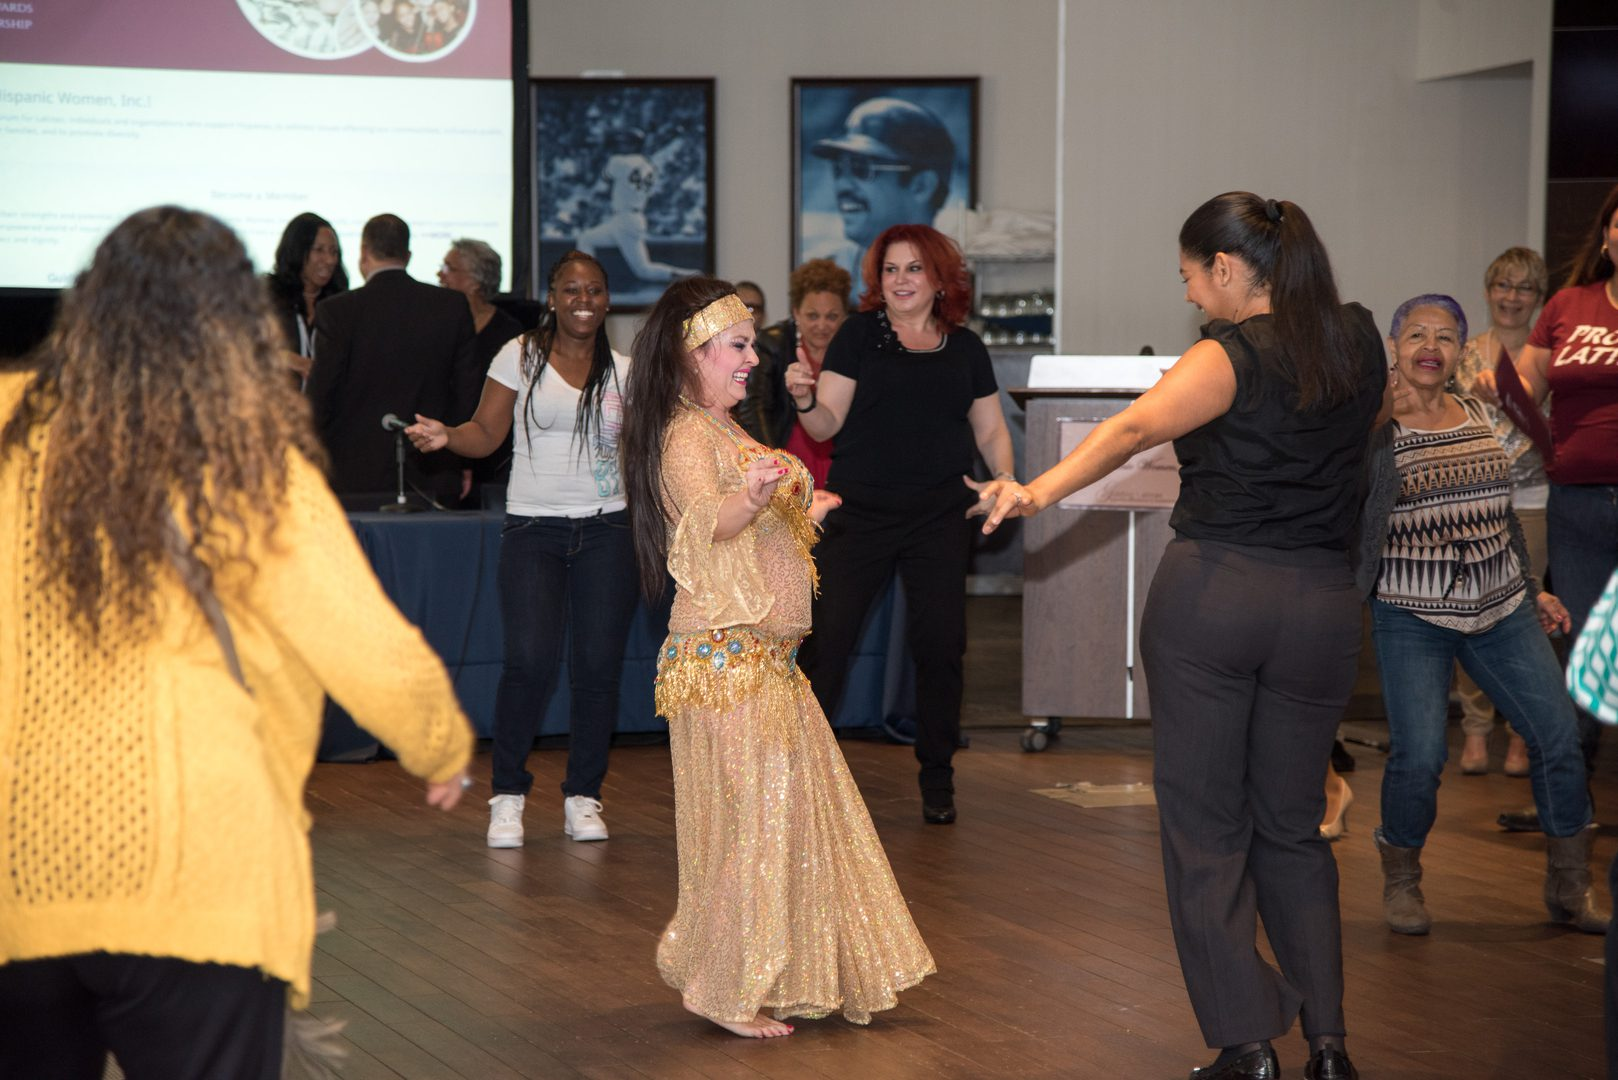 A woman dancing along with the instructor